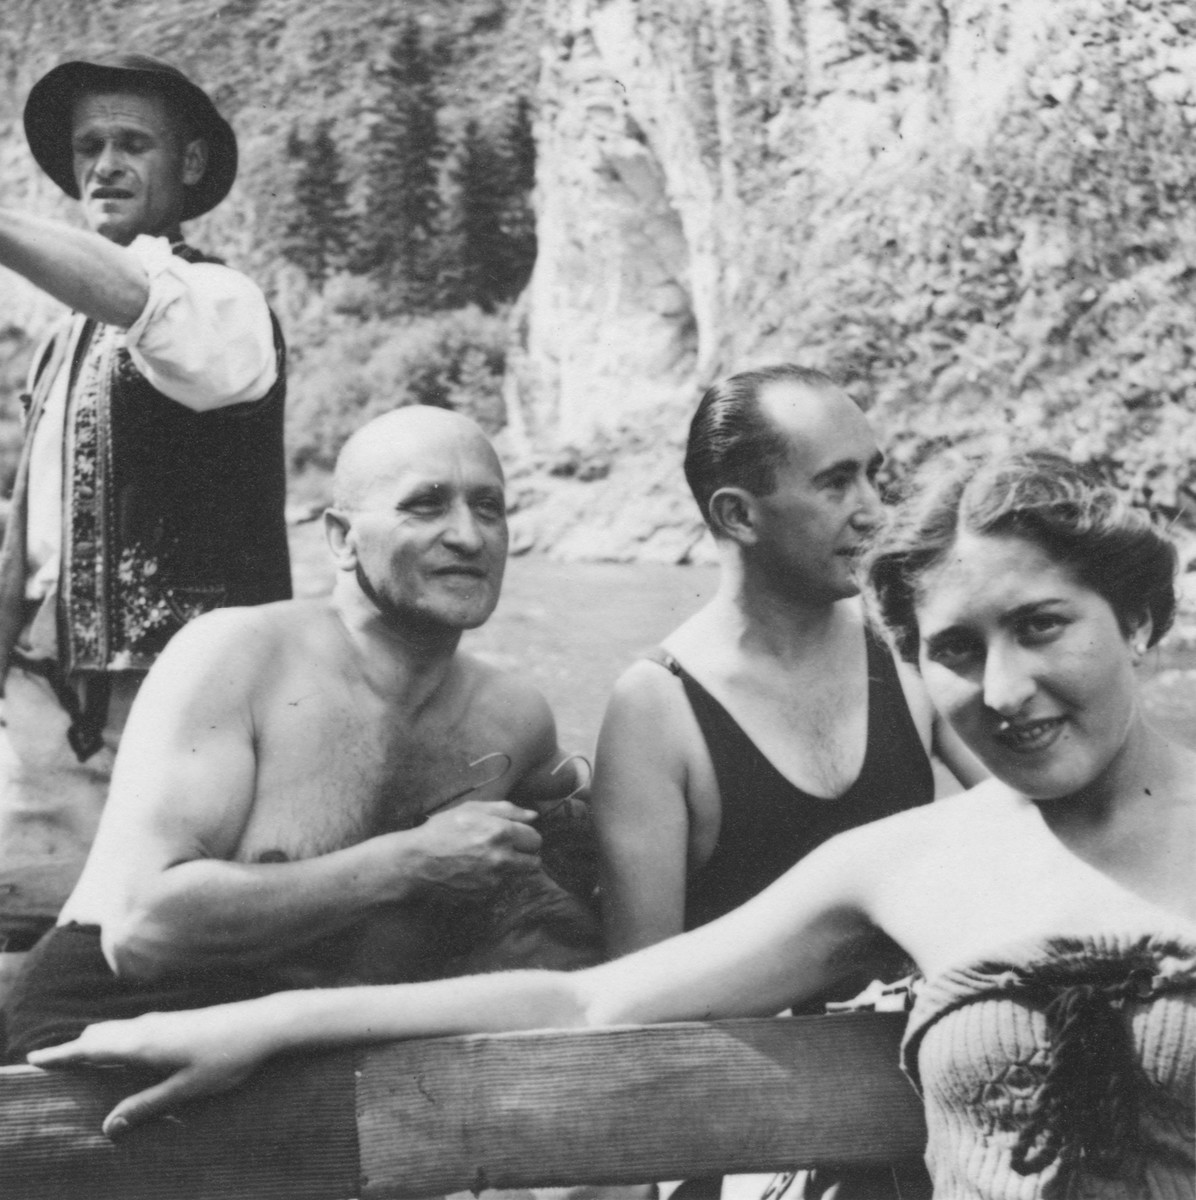 Samuel File, a Jewish businessman from Bielsko-Biala, Poland, relaxes outside on the banks of a river with his wife and friends during a summer vacation.  Pictured are Samuel File (seated at the left) and Edyta File (front, right).